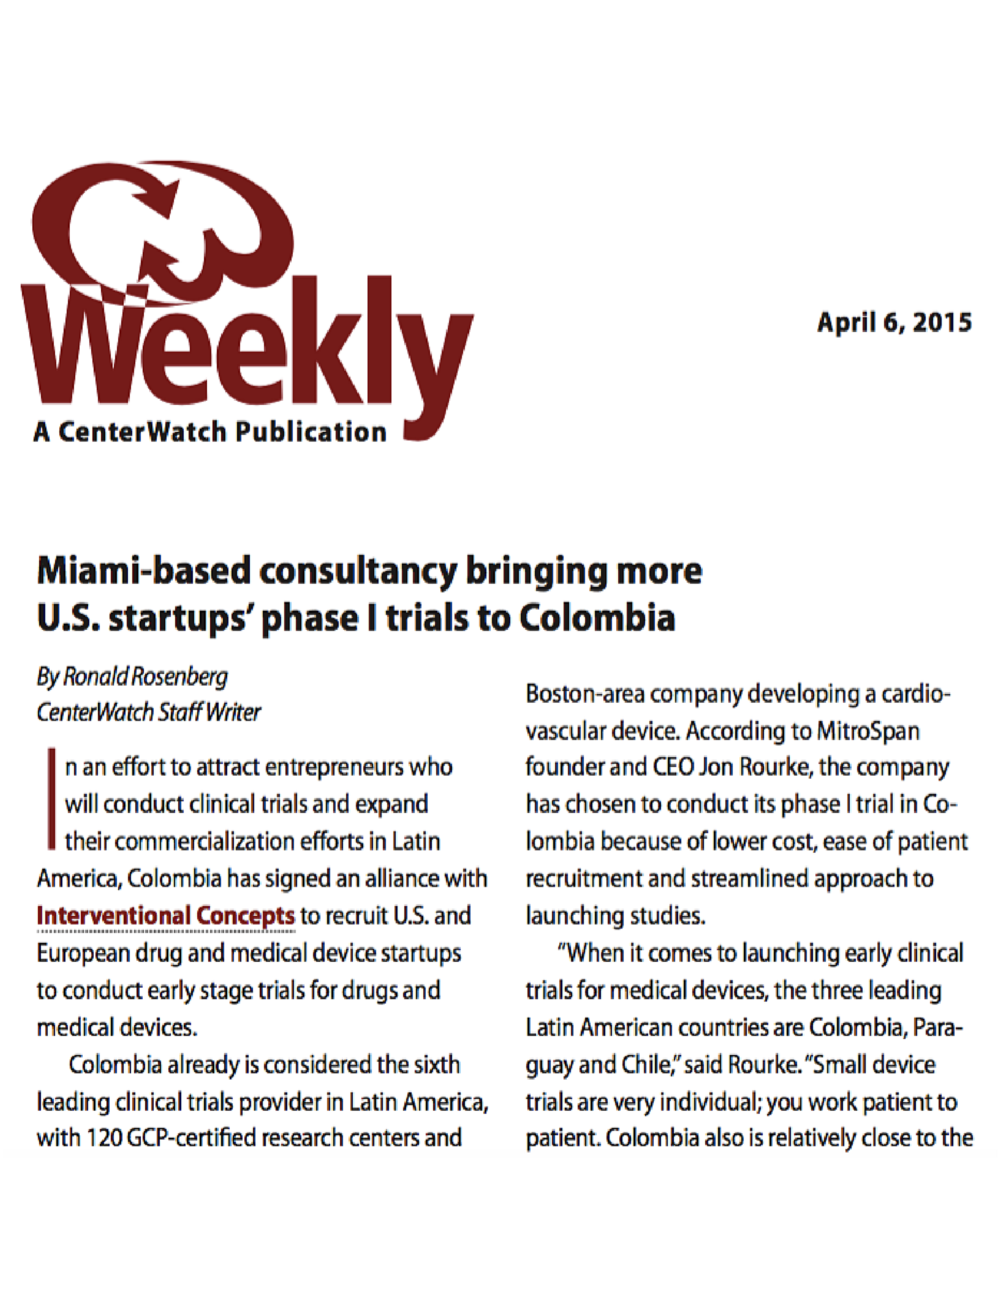 Read CenterWatch Weekly's article on our work in Colombia: Miami-based consultancy bringing more U.S. startups' phase I trials to Colombia